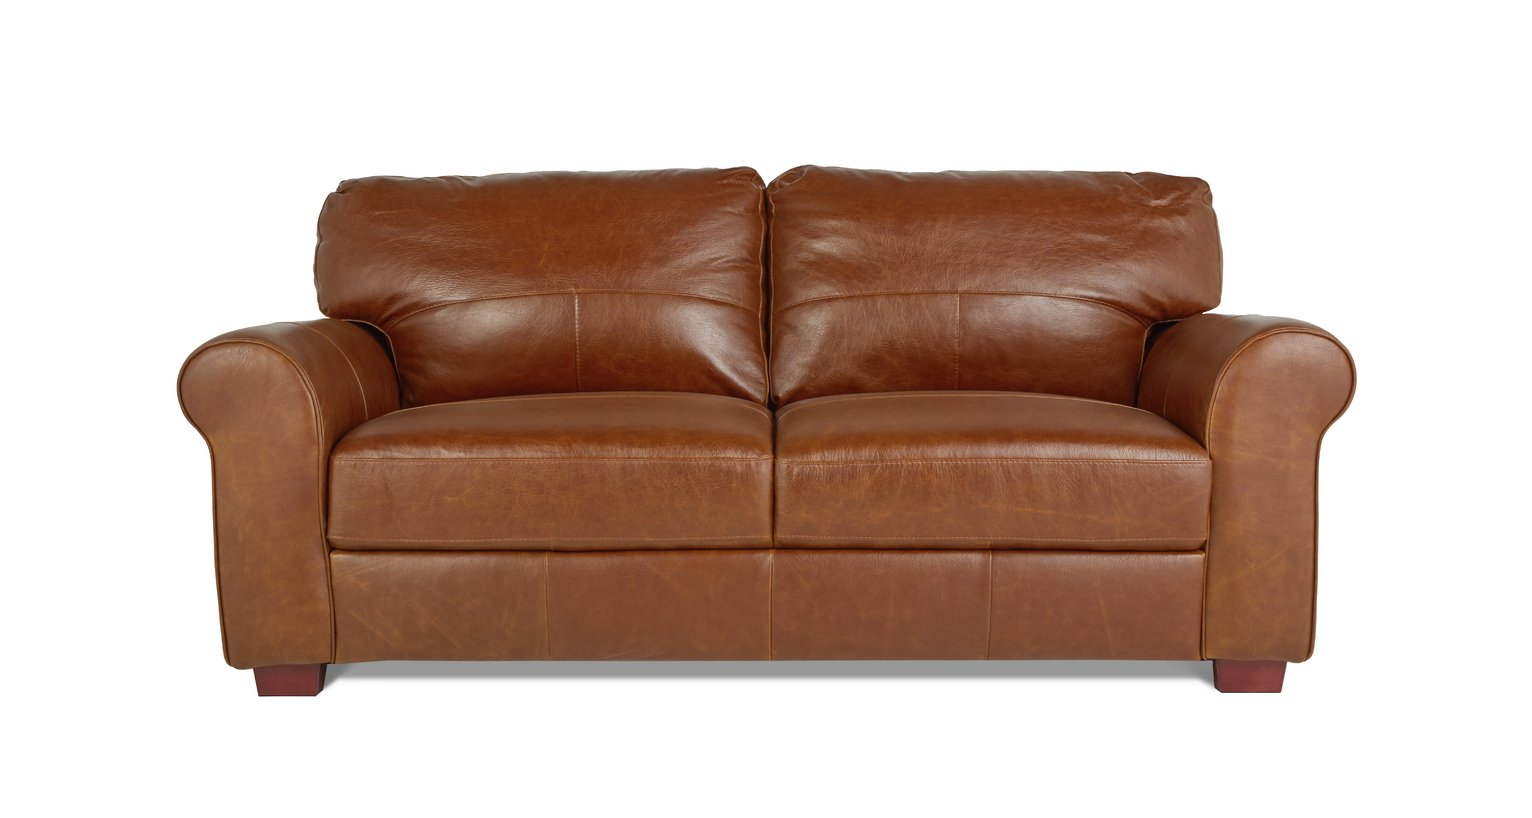 Buy Heart Of House Salisbury 3 Seater Leather Sofa   Tan At Argos.co.uk    Your Online Shop For Sofas, Living Room Furniture, Home And Garden.